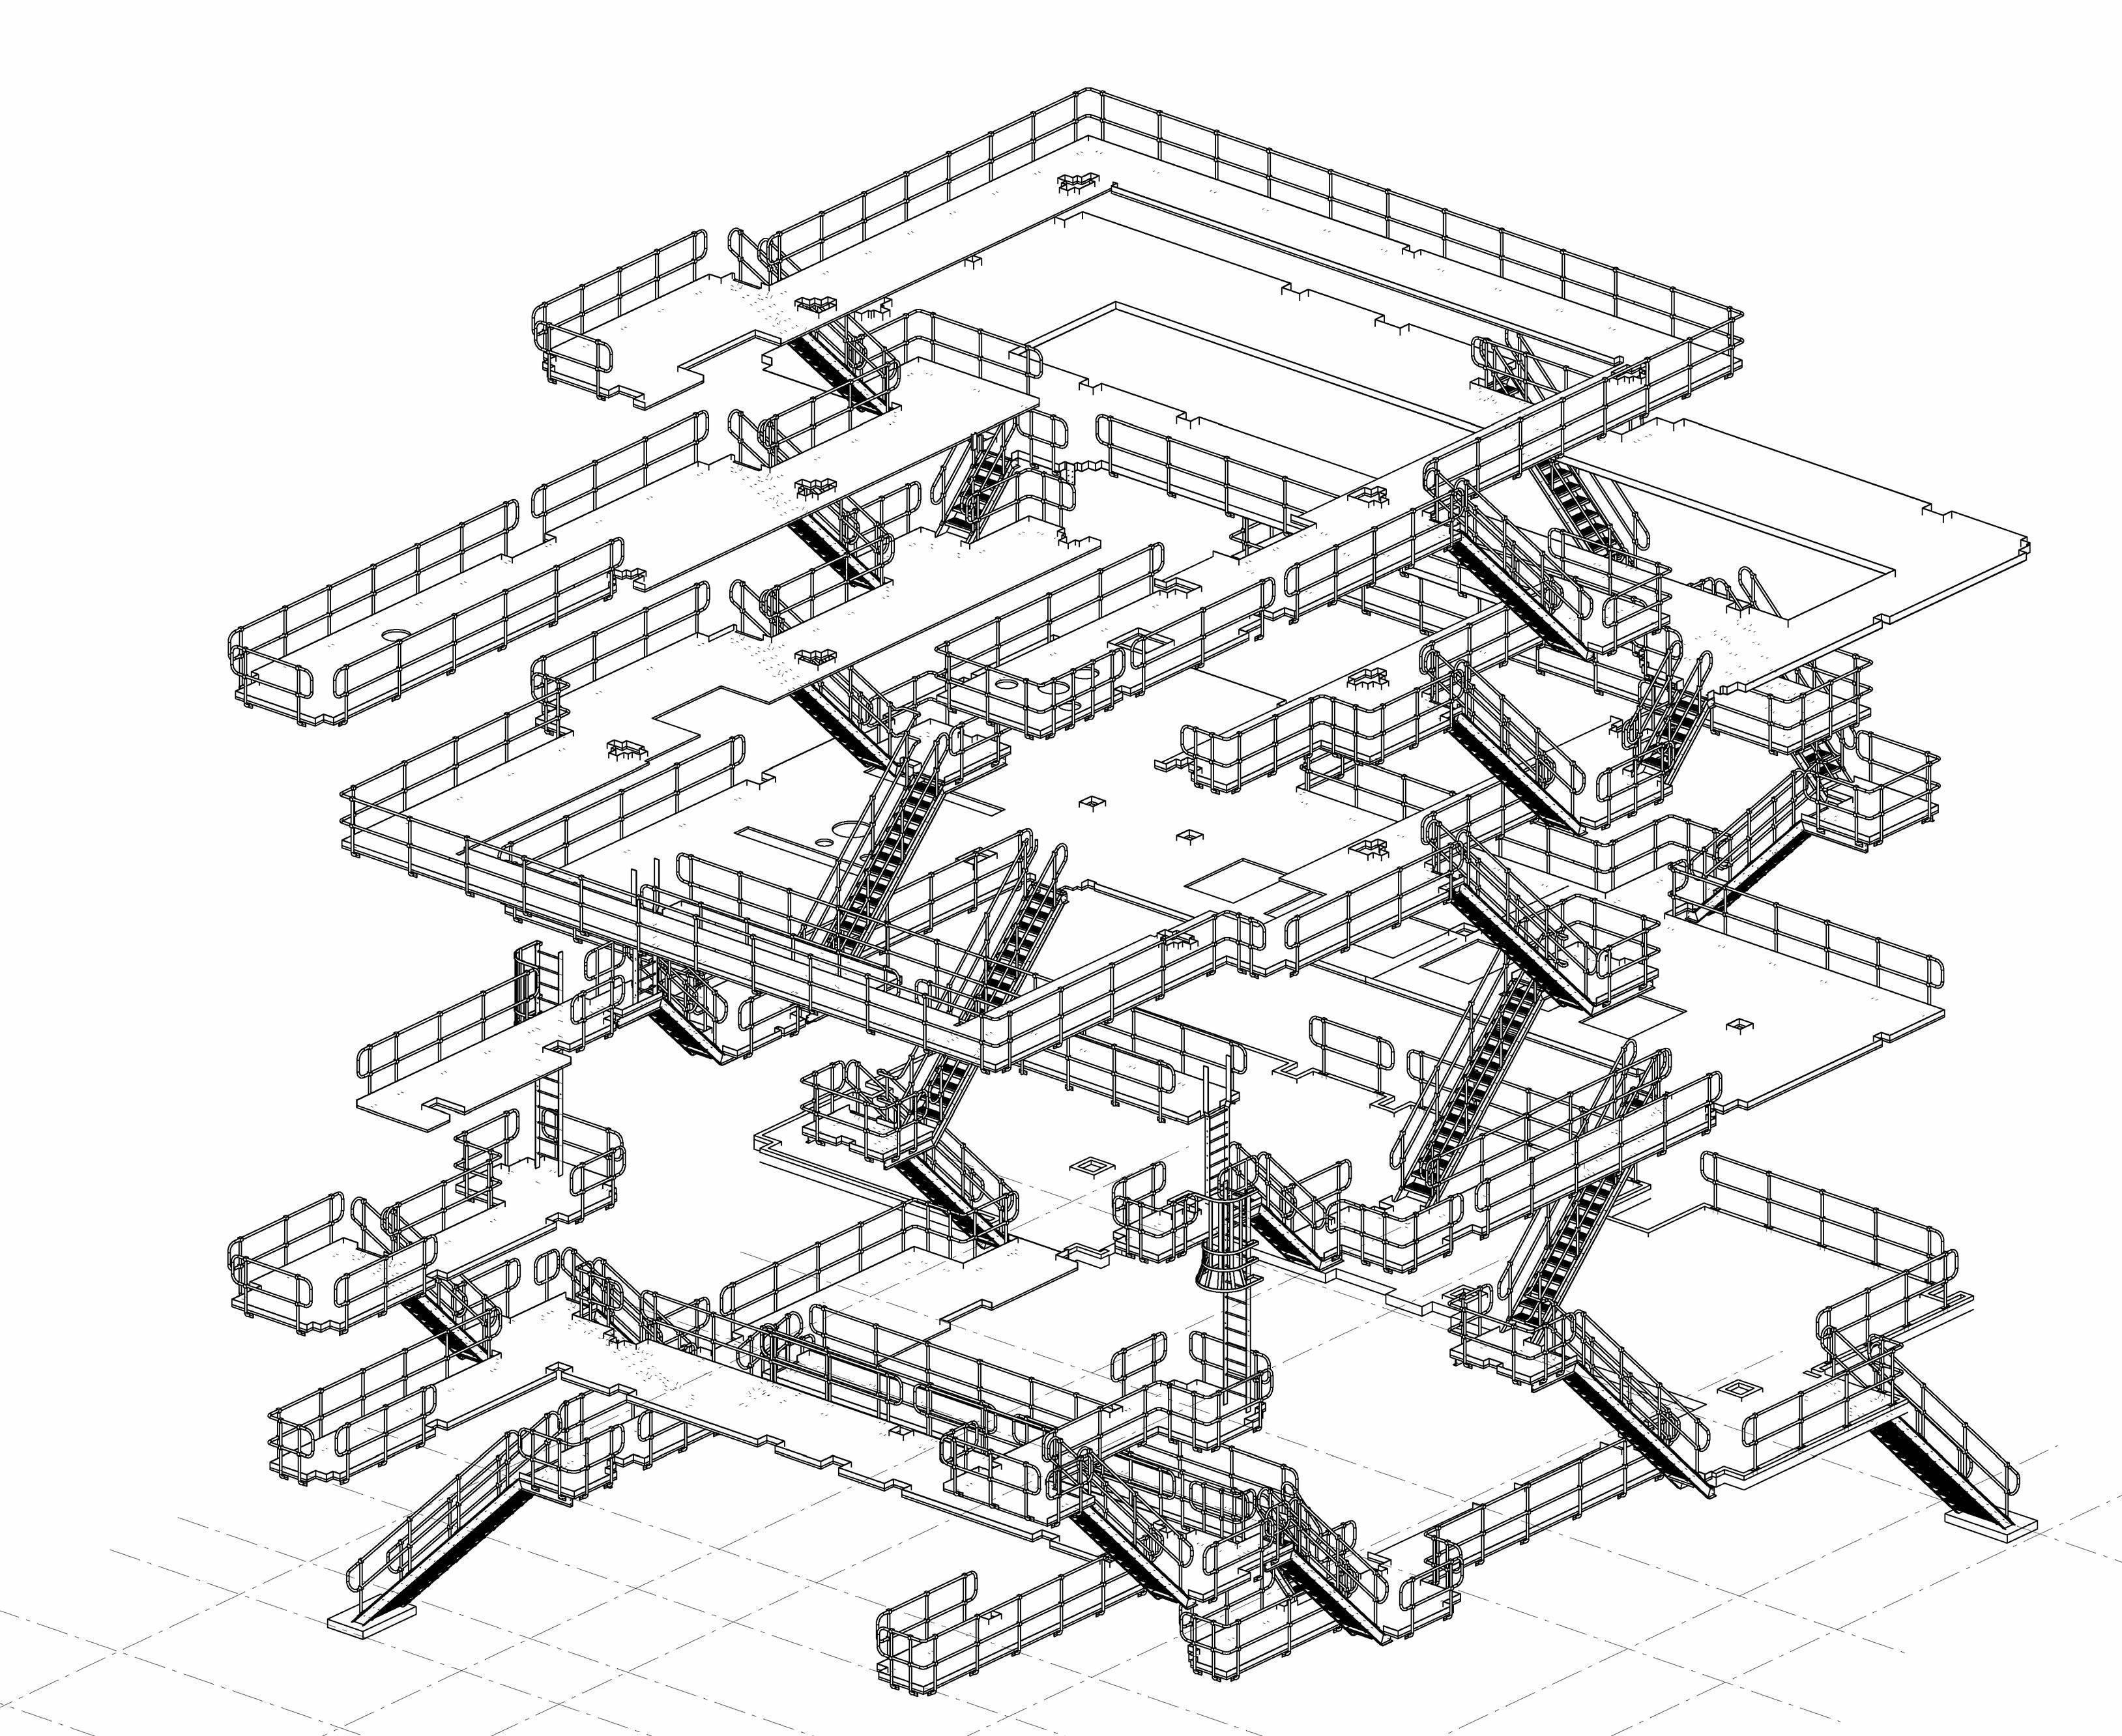 The first 3D view of stair treads and hand railings layout